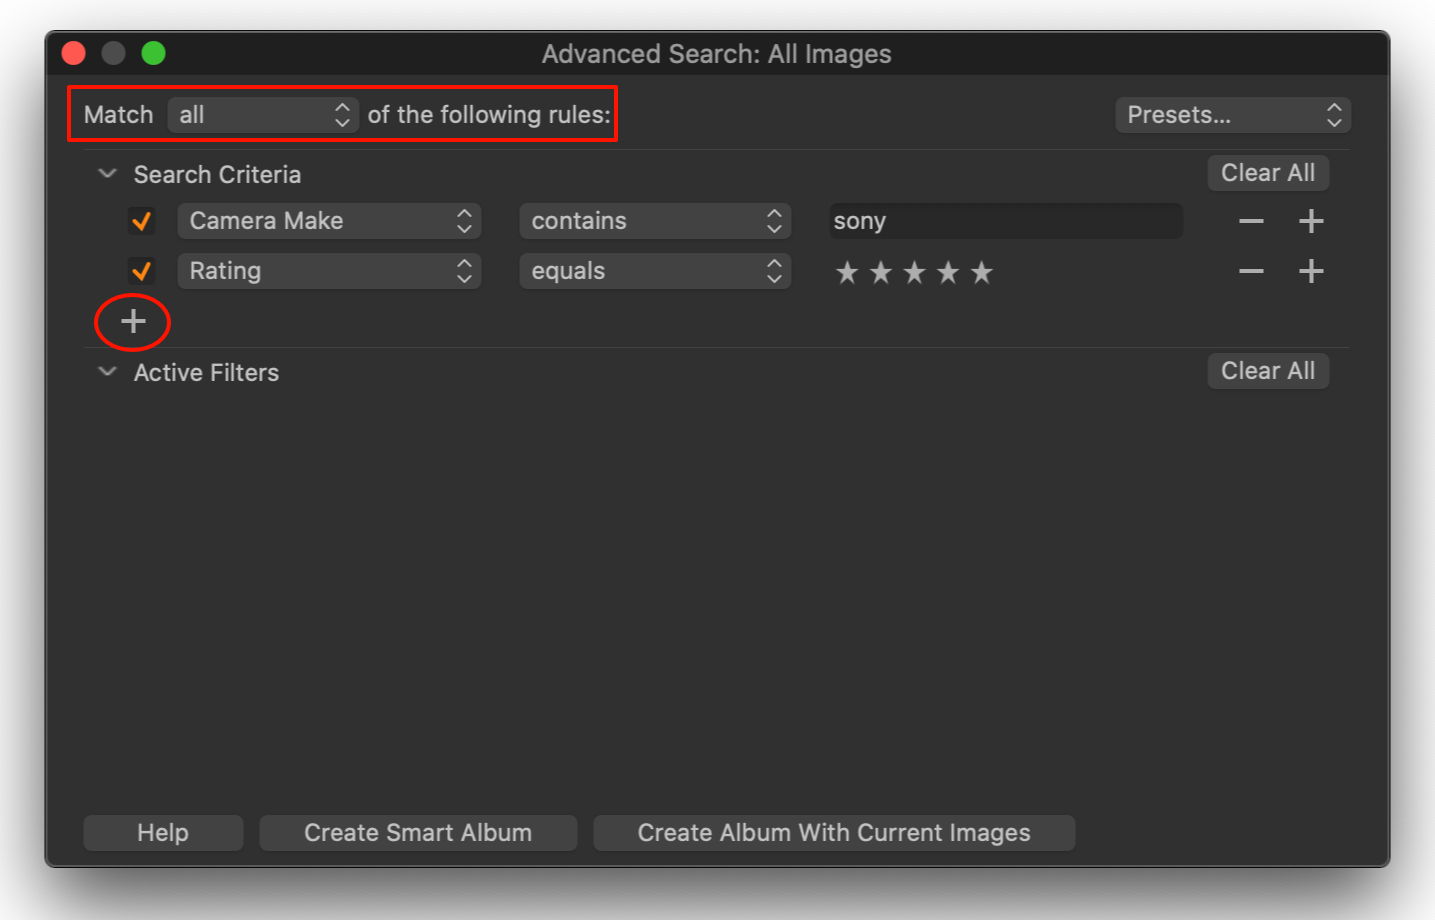 advanced search with two rules, capture one 20